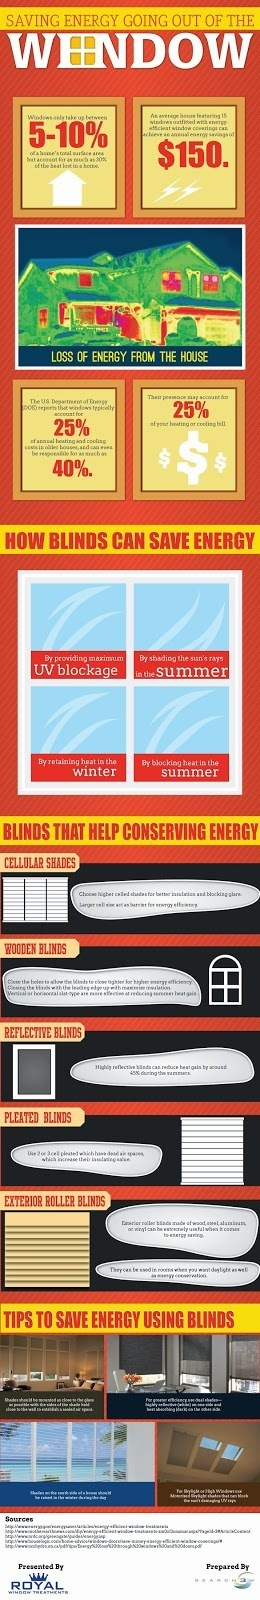 Saving Energy Going Out Of The Windo | Royal Decorators | Scoop.it